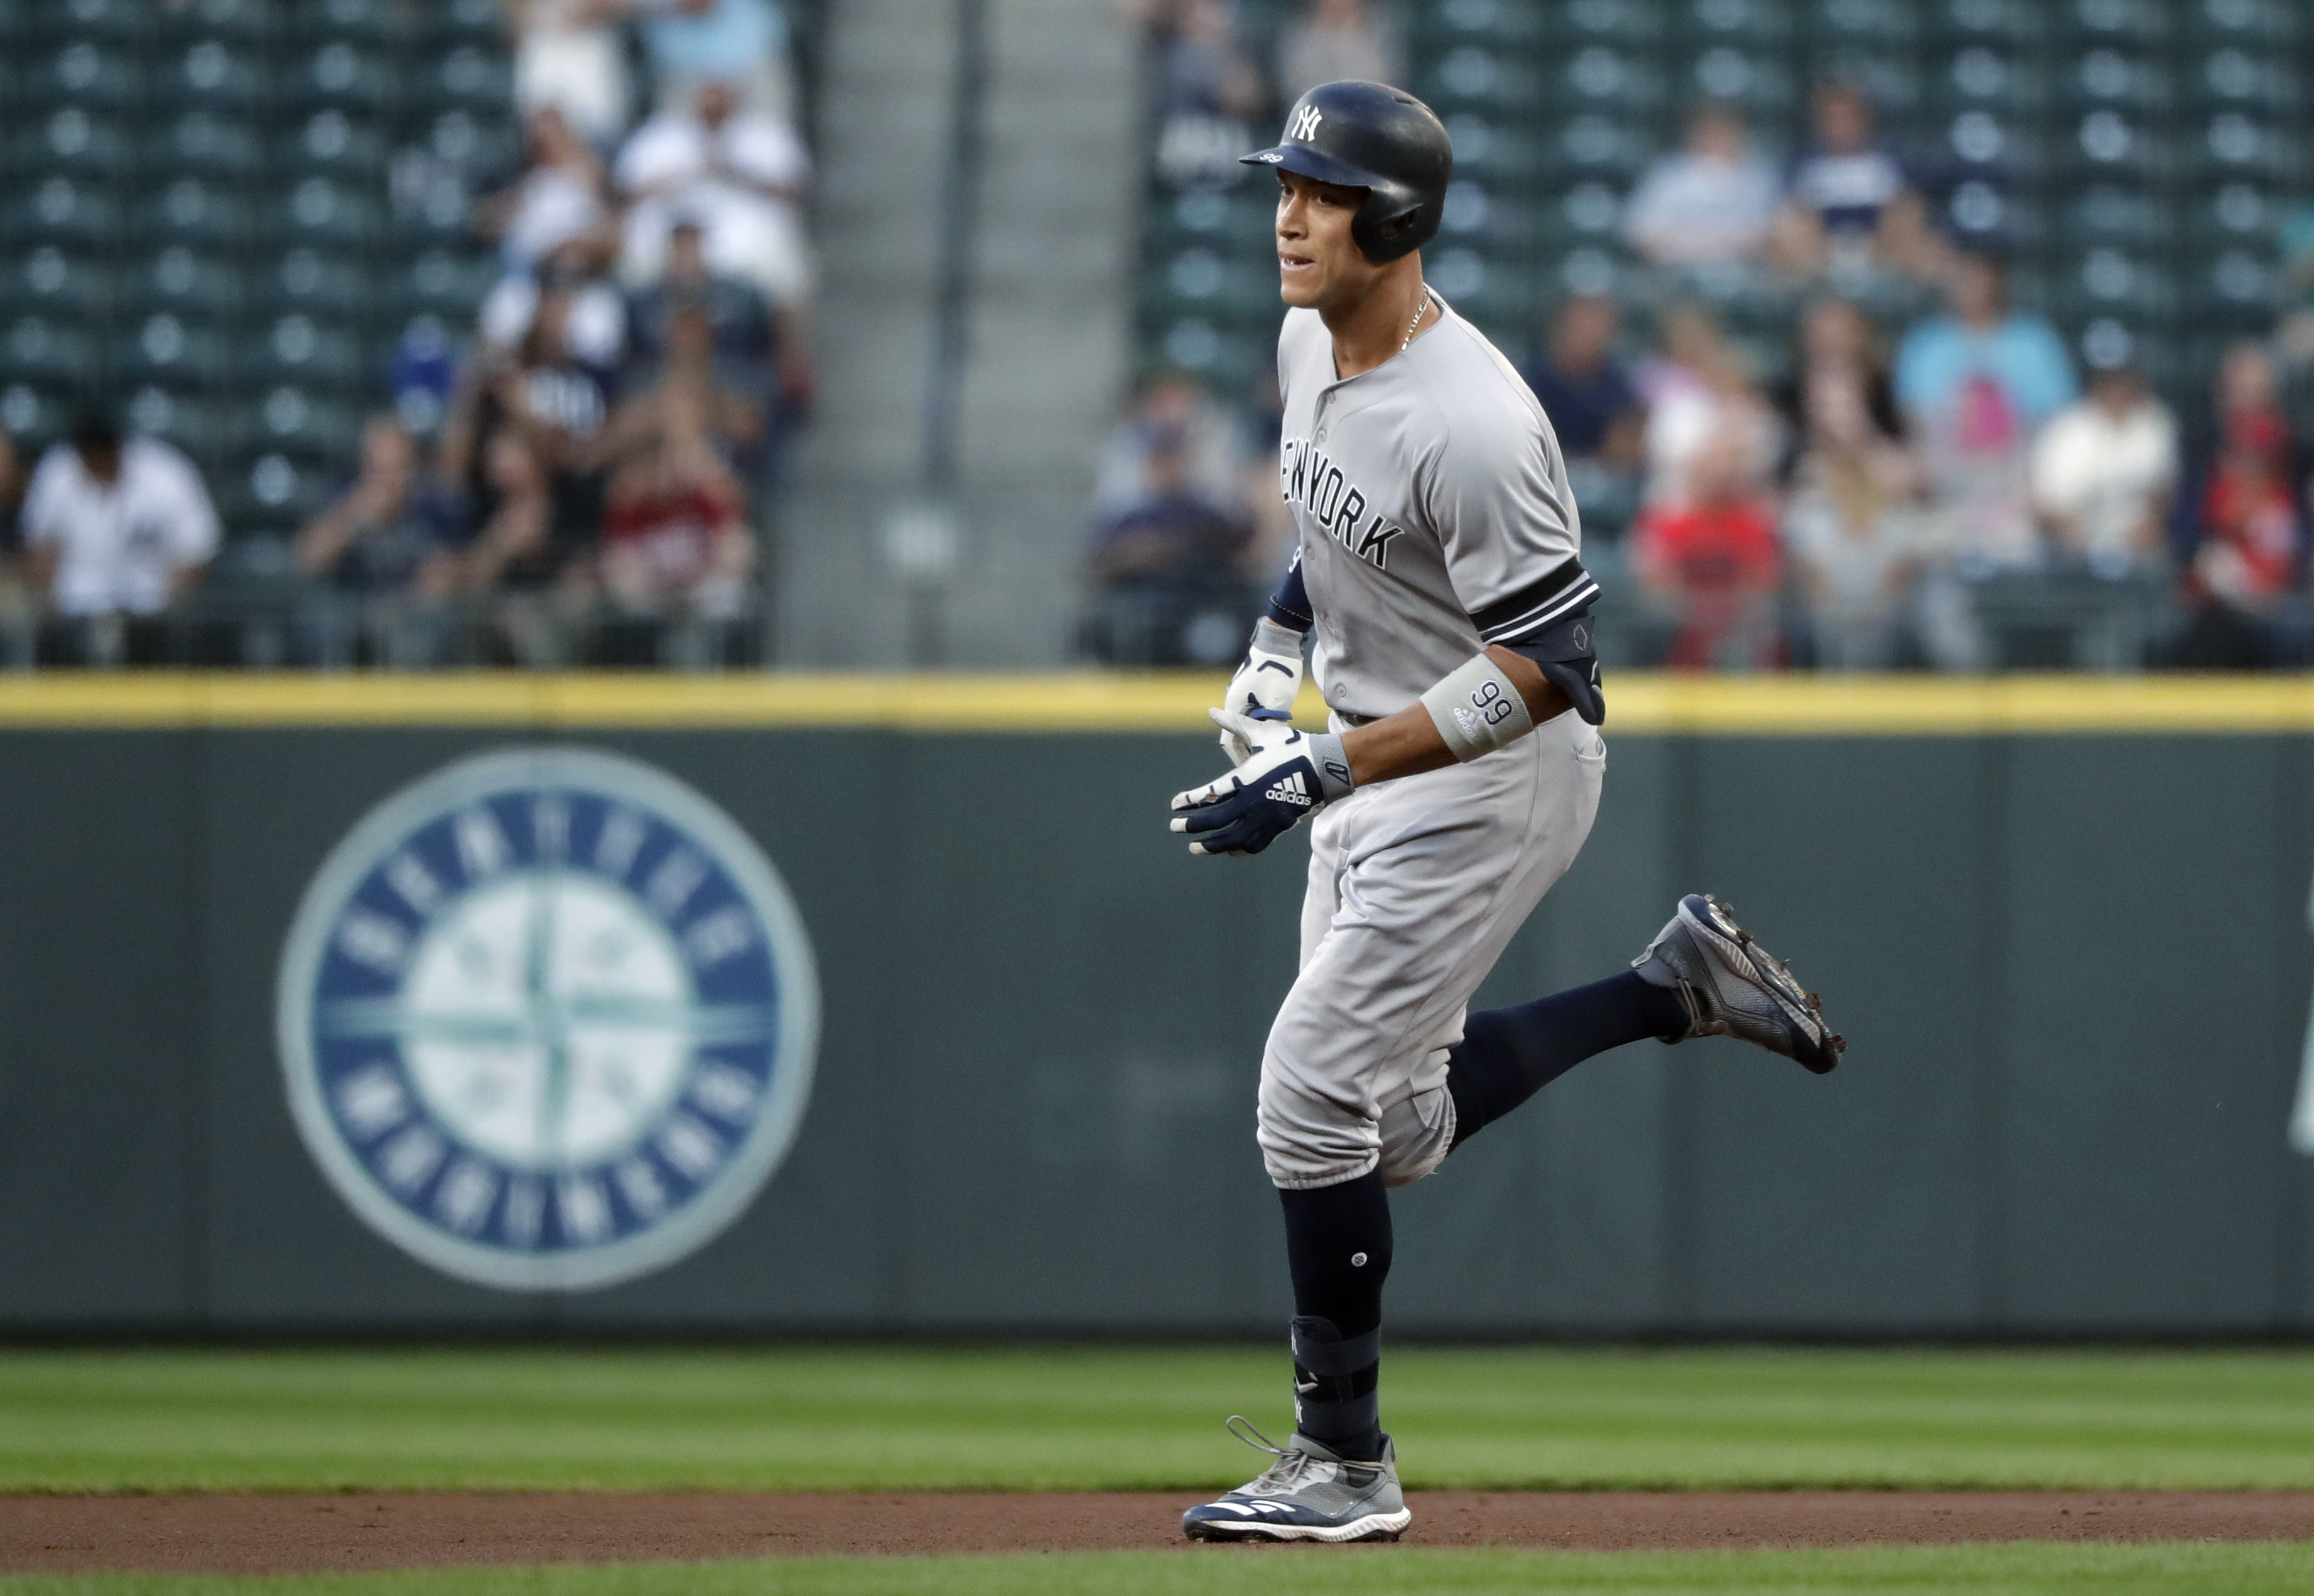 Yankees' Aaron Judge becomes third-fastest to 100 home runs